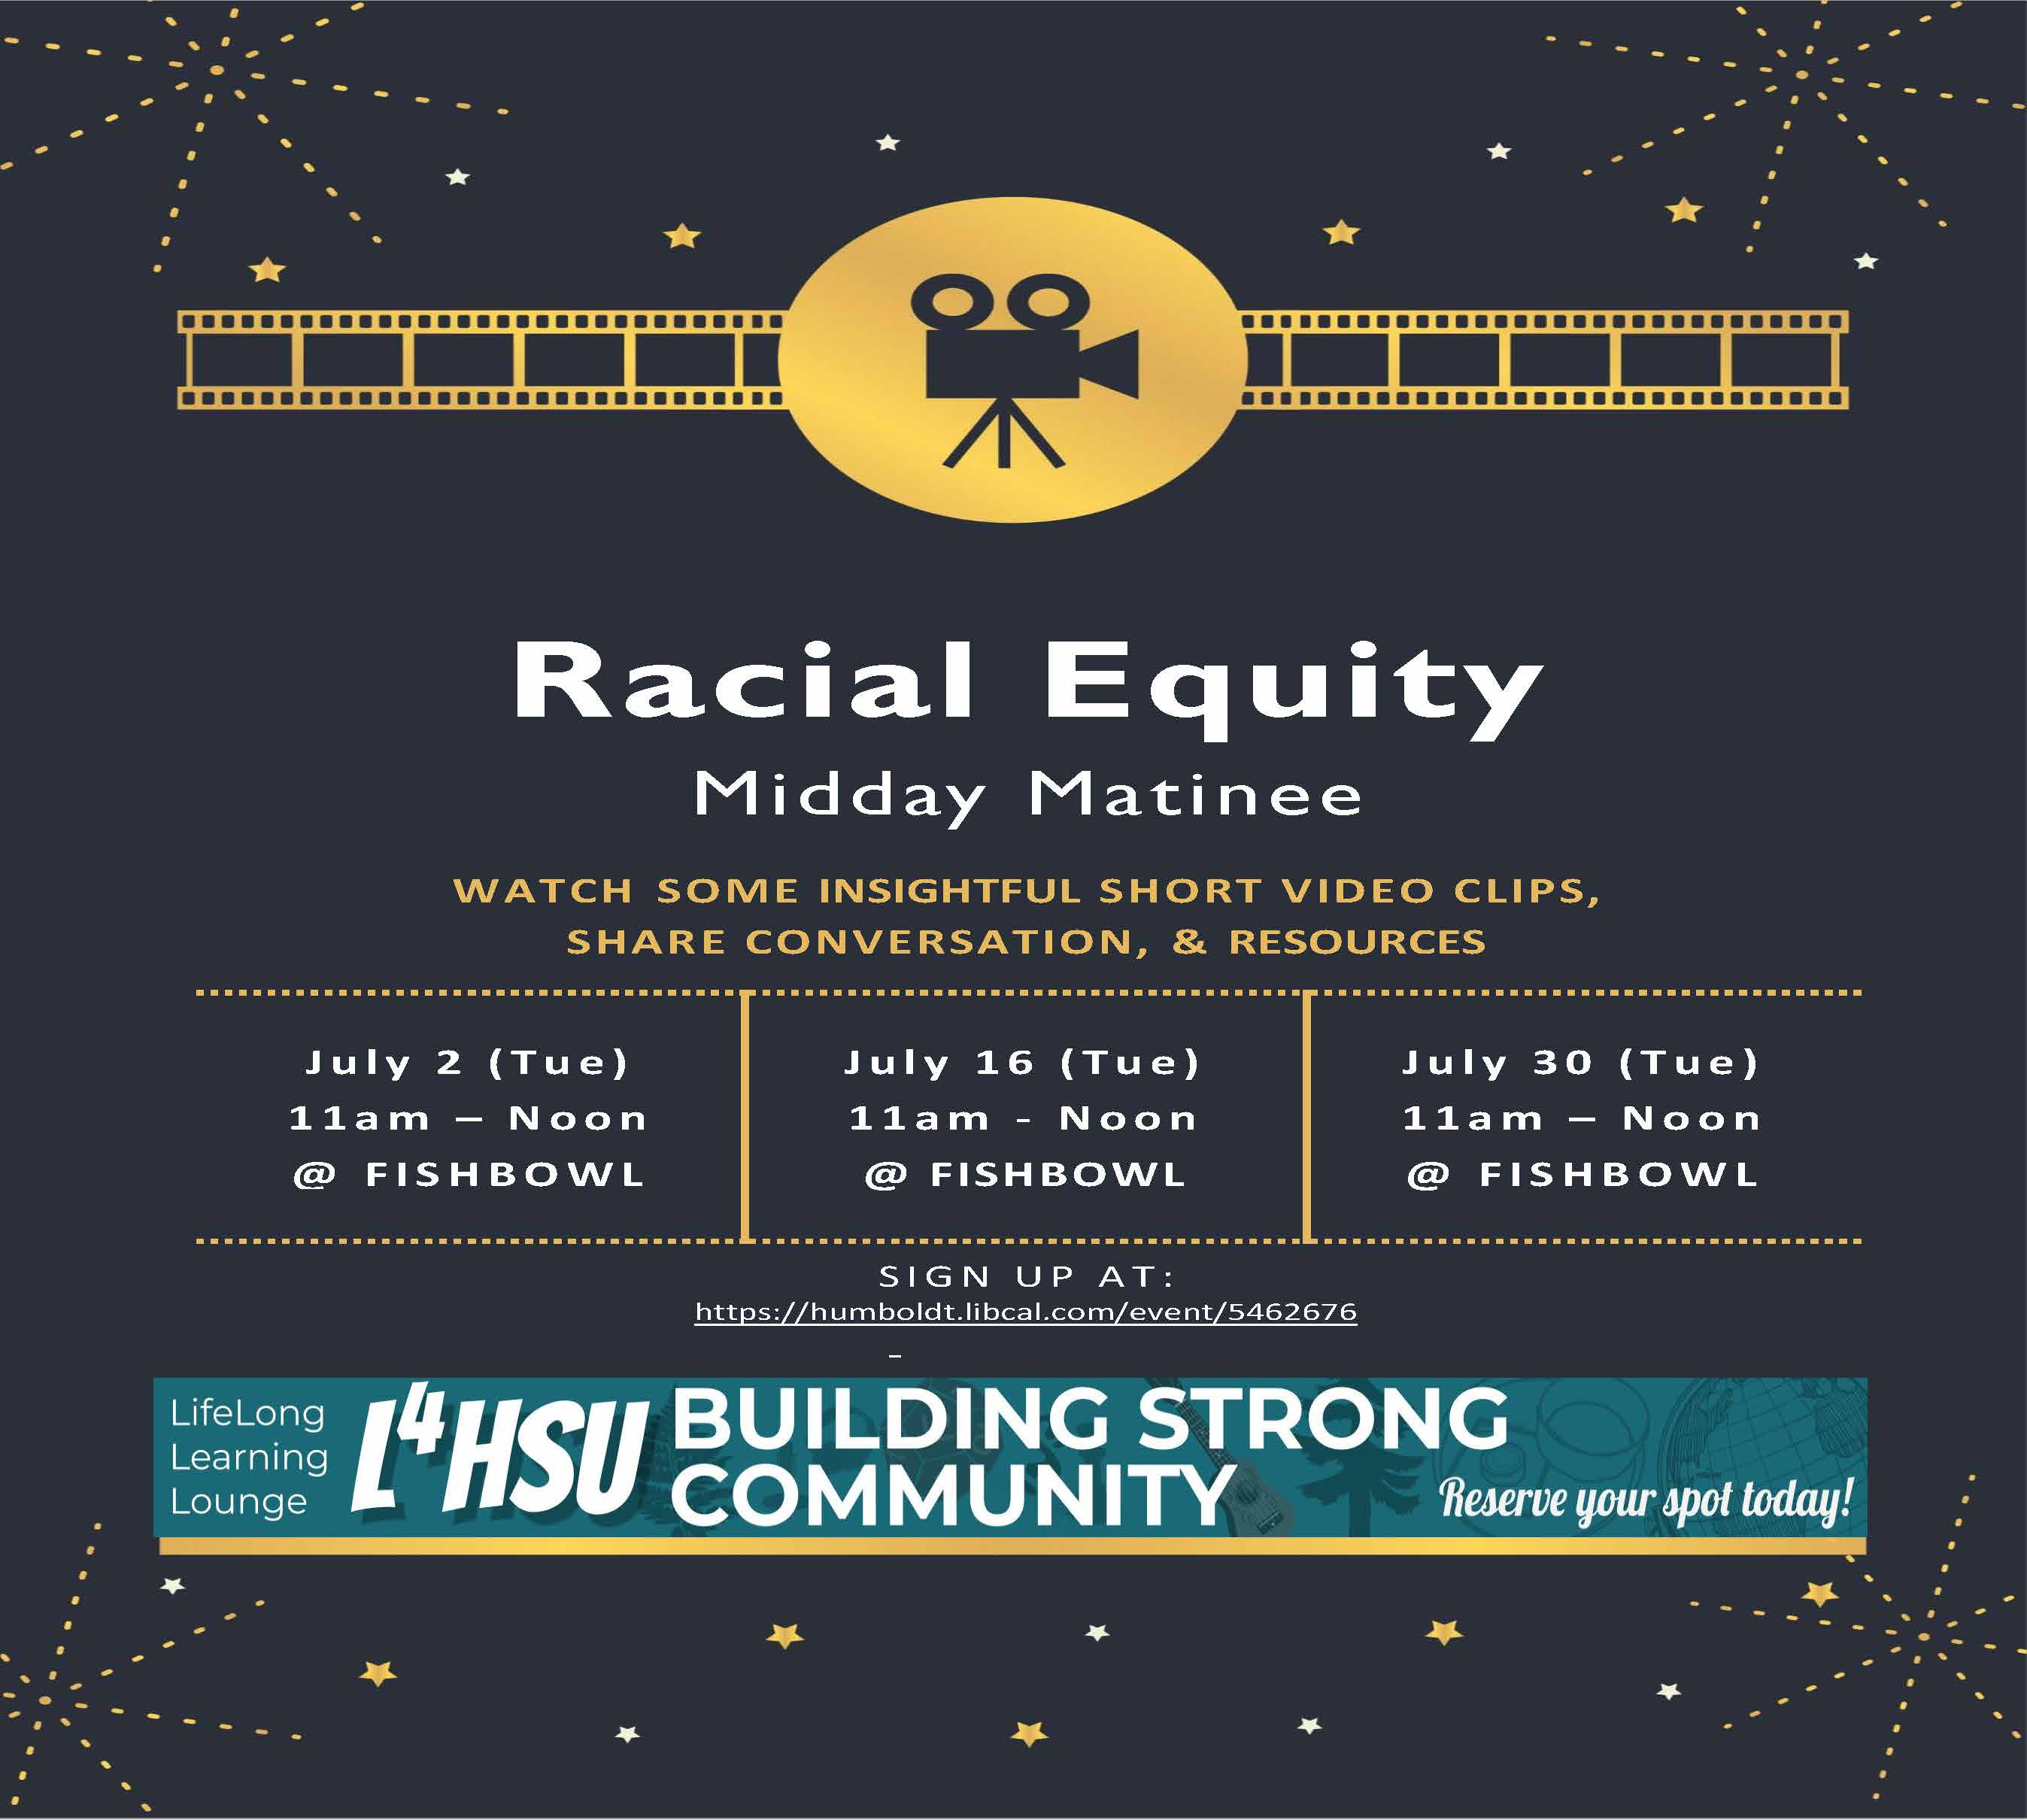 Racial Equity Midday Matinee